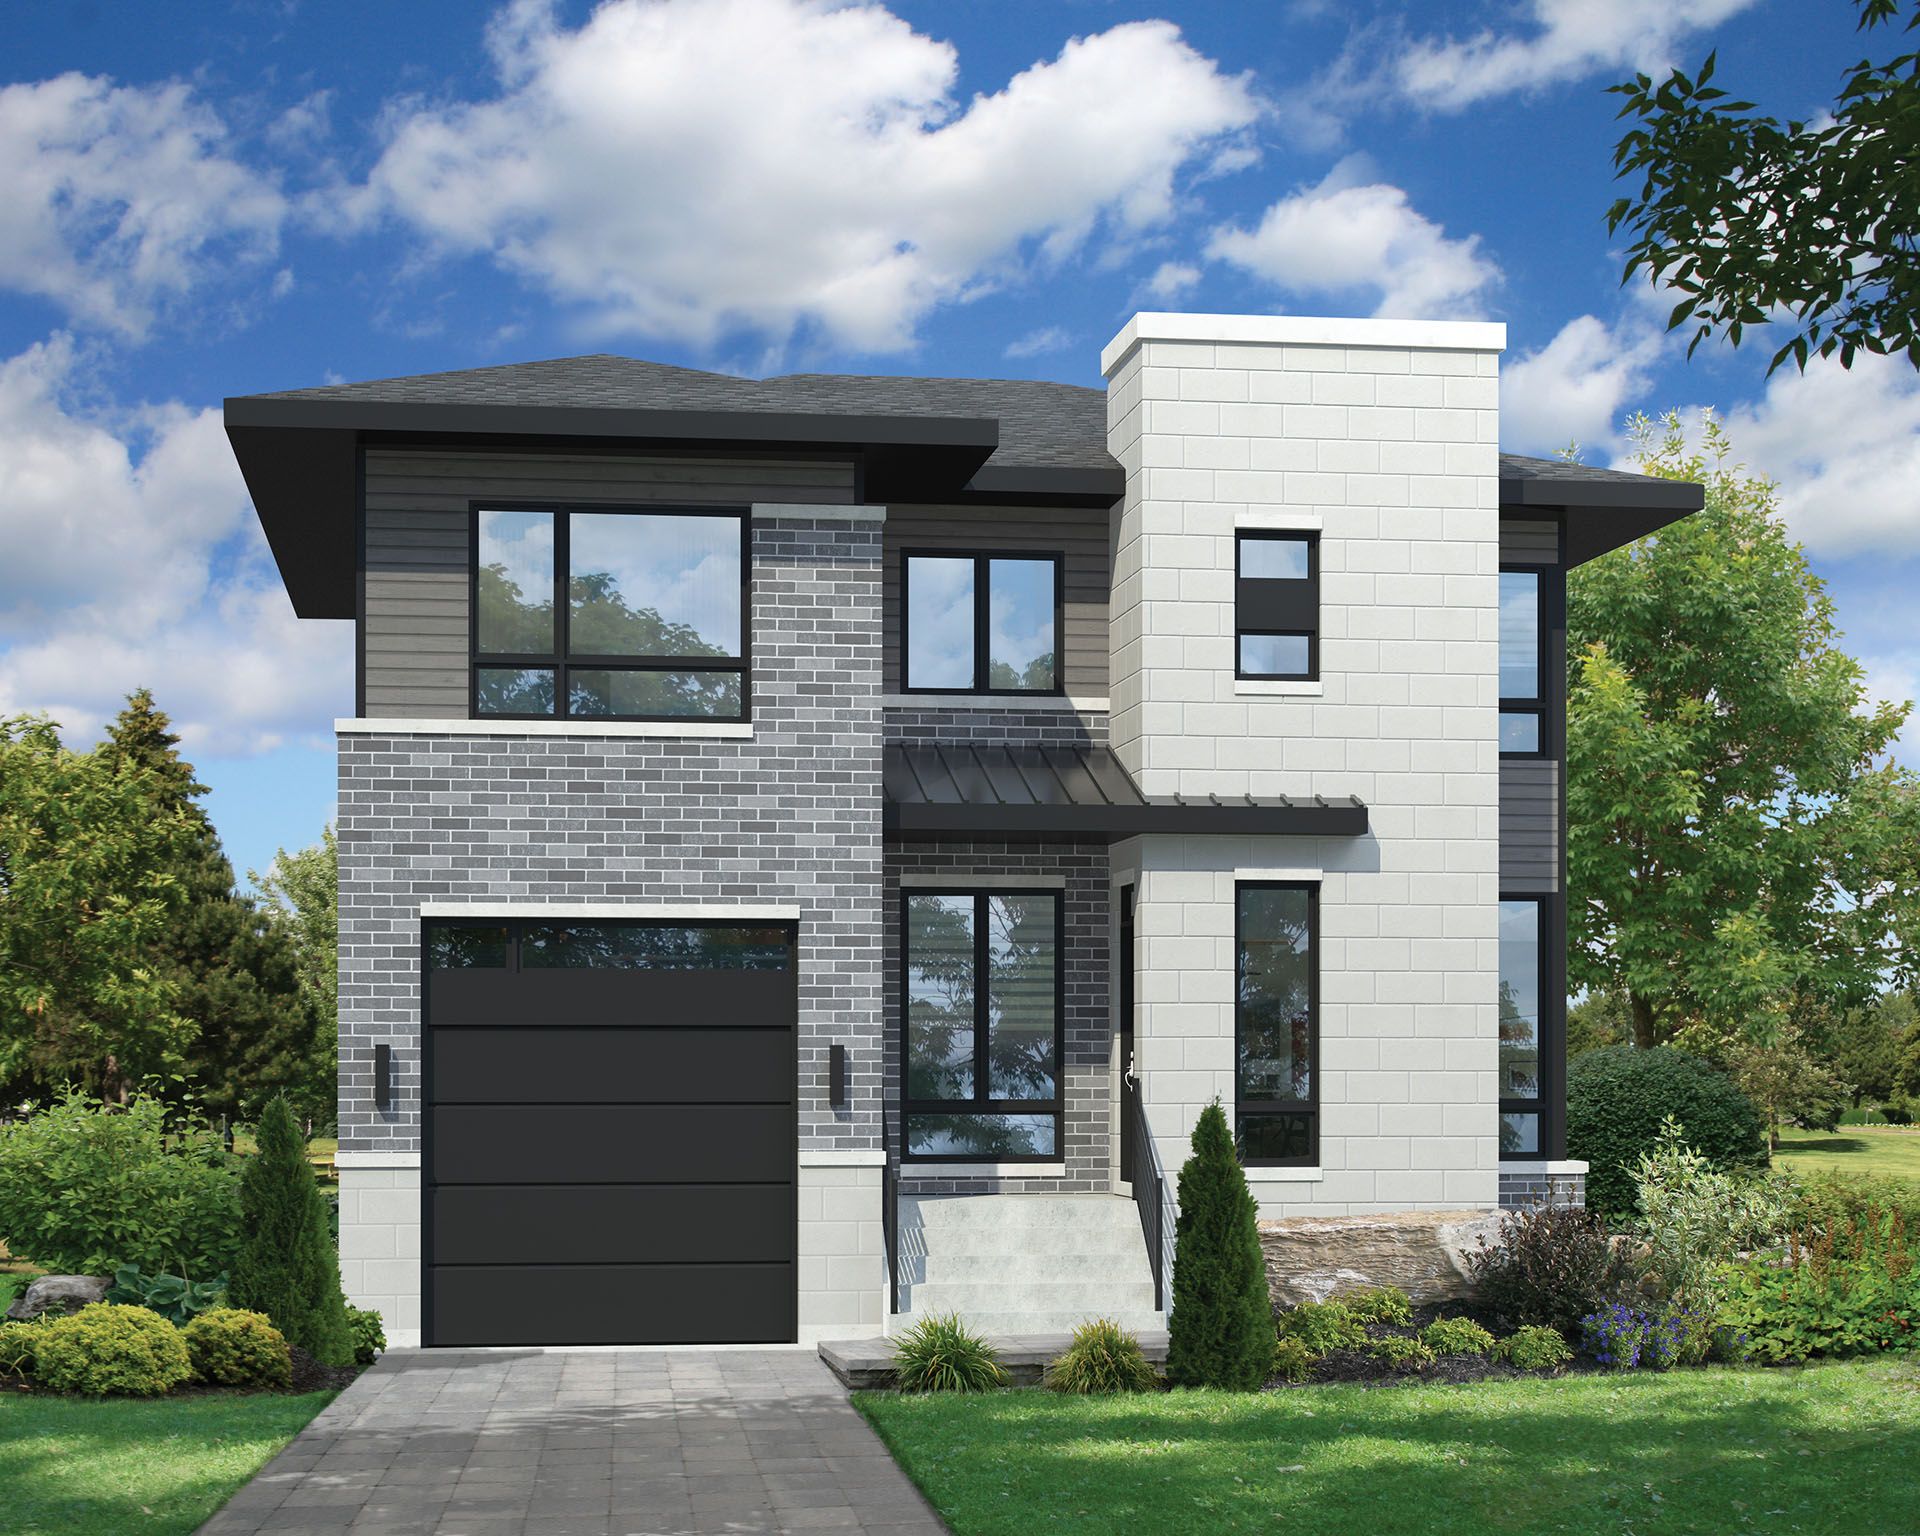 Two story contemporary house plan 80806pm 2nd floor master suite cad available canadian - Modern two story houses ...